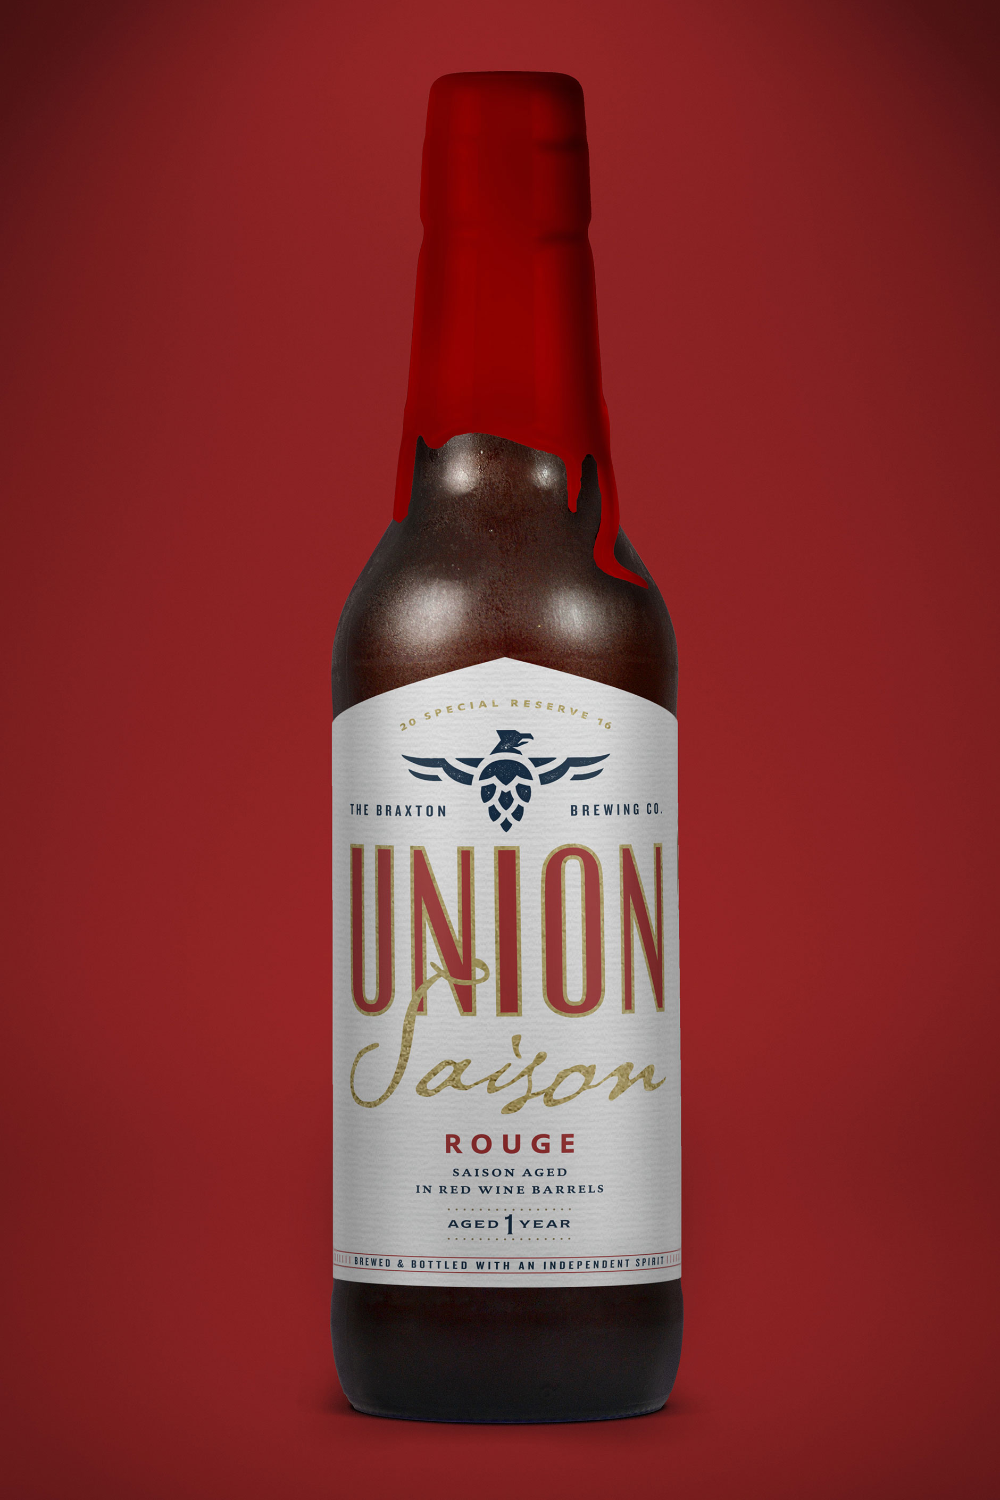 22+ Union craft brewing eruption ideas